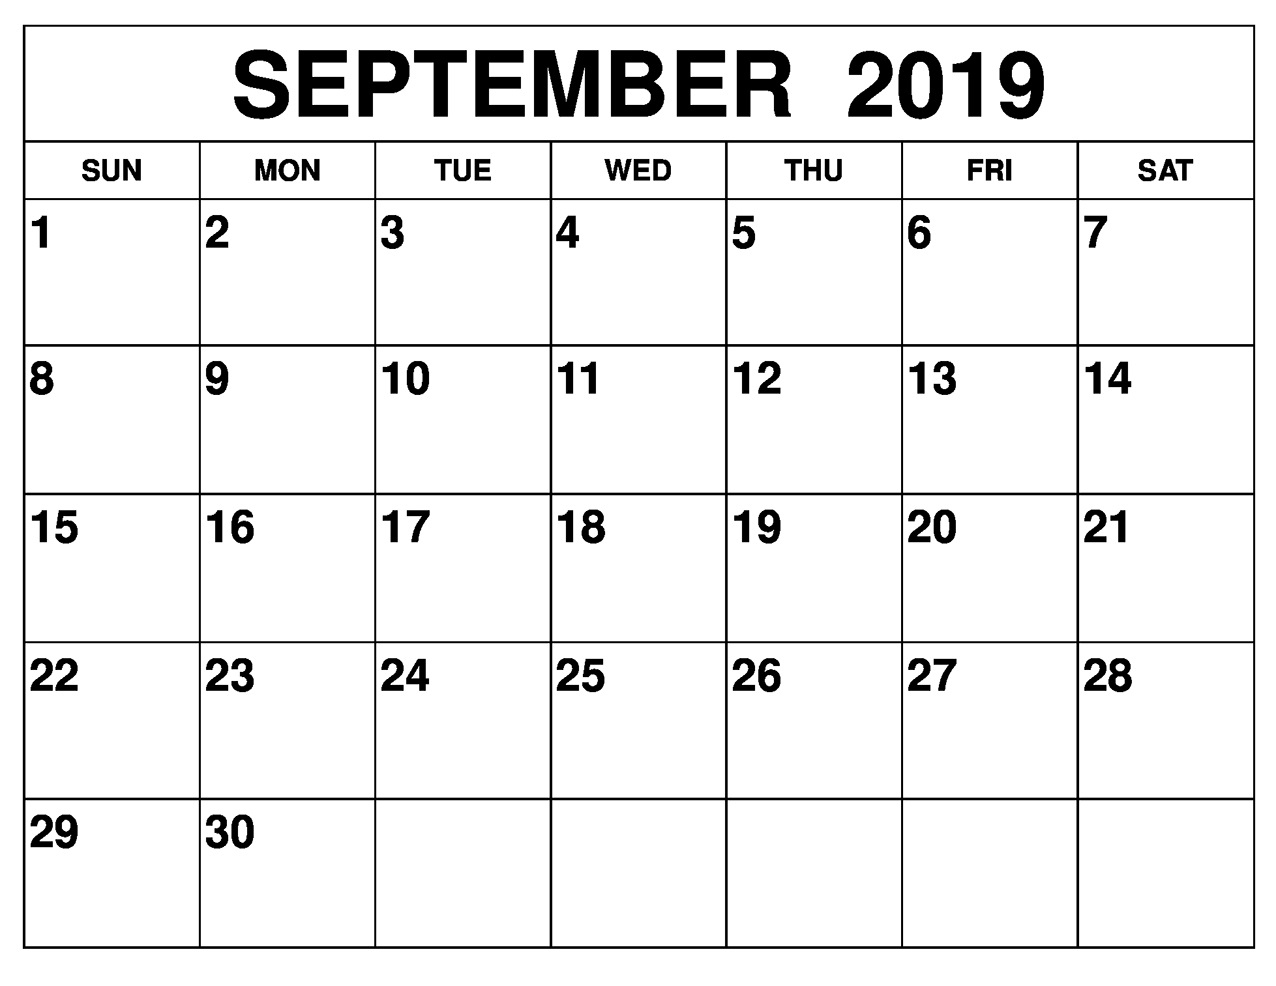 Blank September 2019 Calendar Printable Free Download-A Blank Page Of 31 Days Of A Calendar